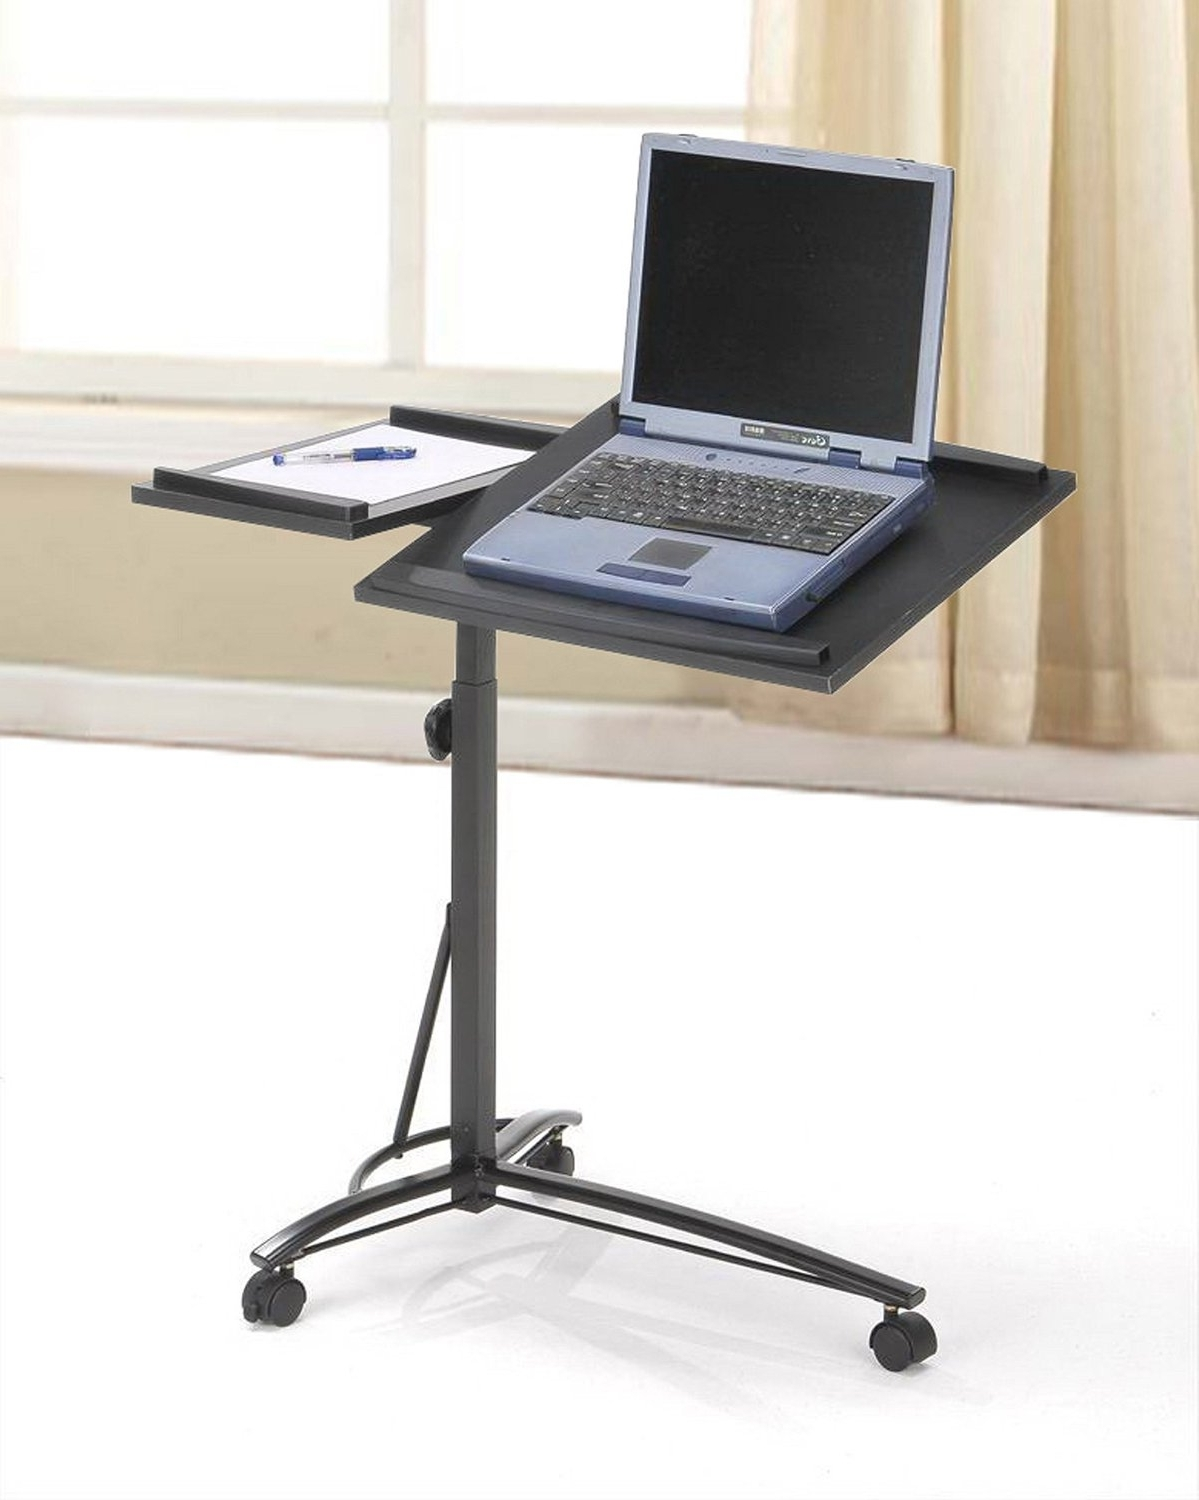 Best And Newest Portable Computer Desks In Desk: Interesting Portable Computer Desk On Wheels 2017 Ideas (View 9 of 20)